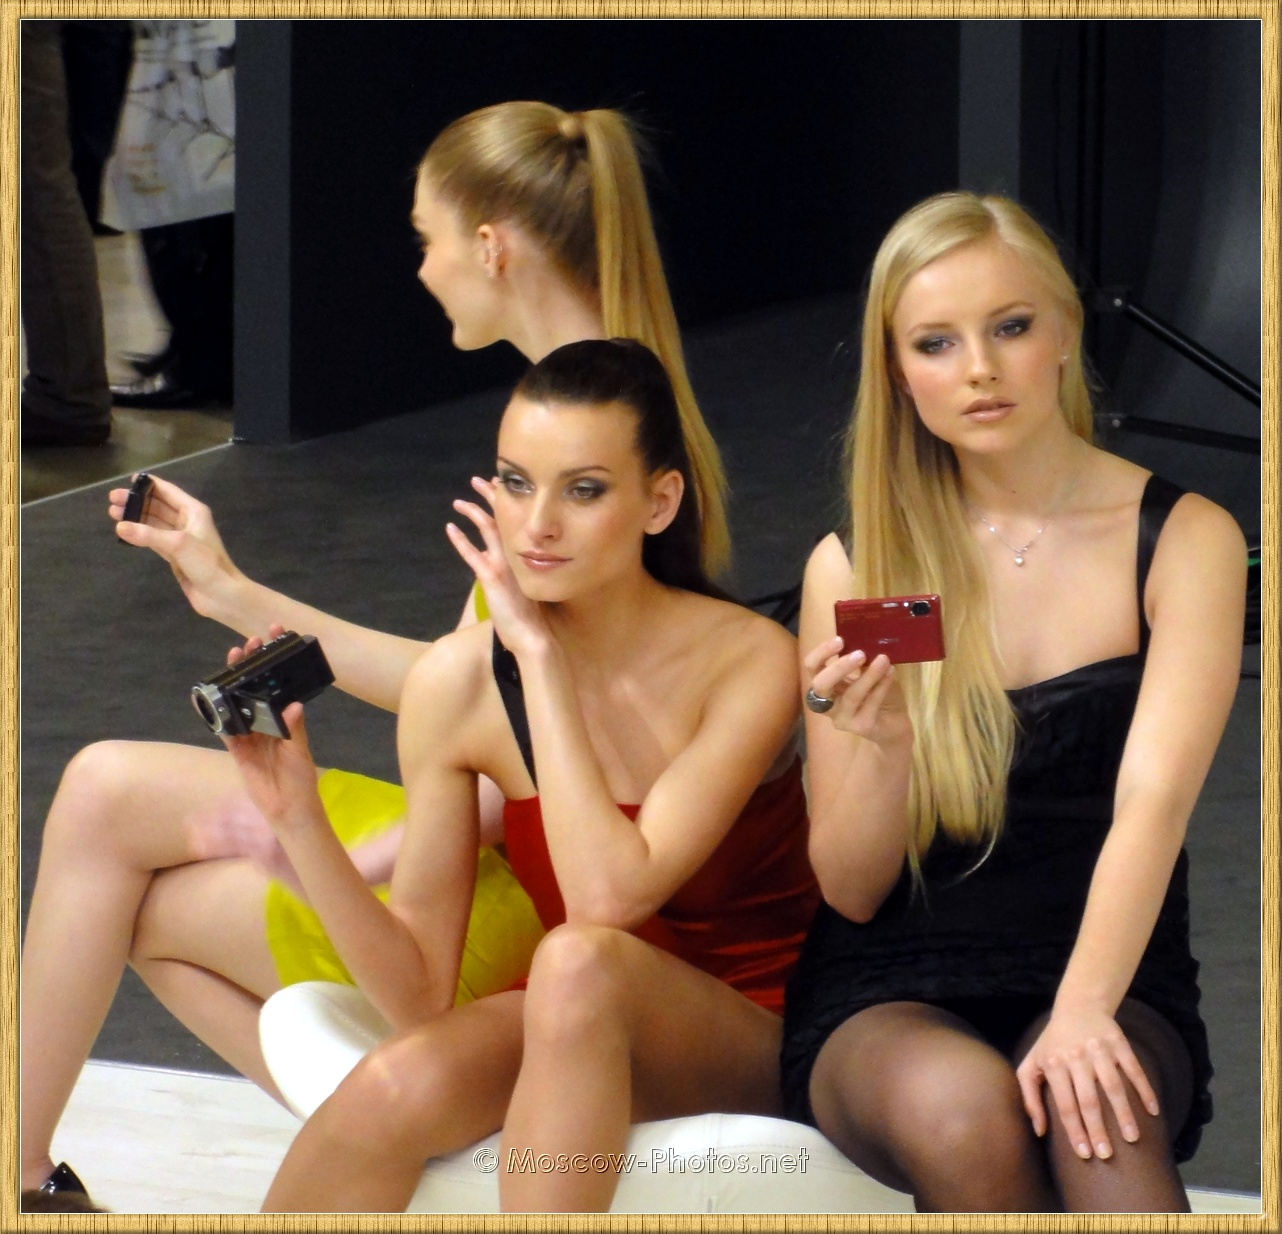 Fashion Models Posing With Digital Cameras